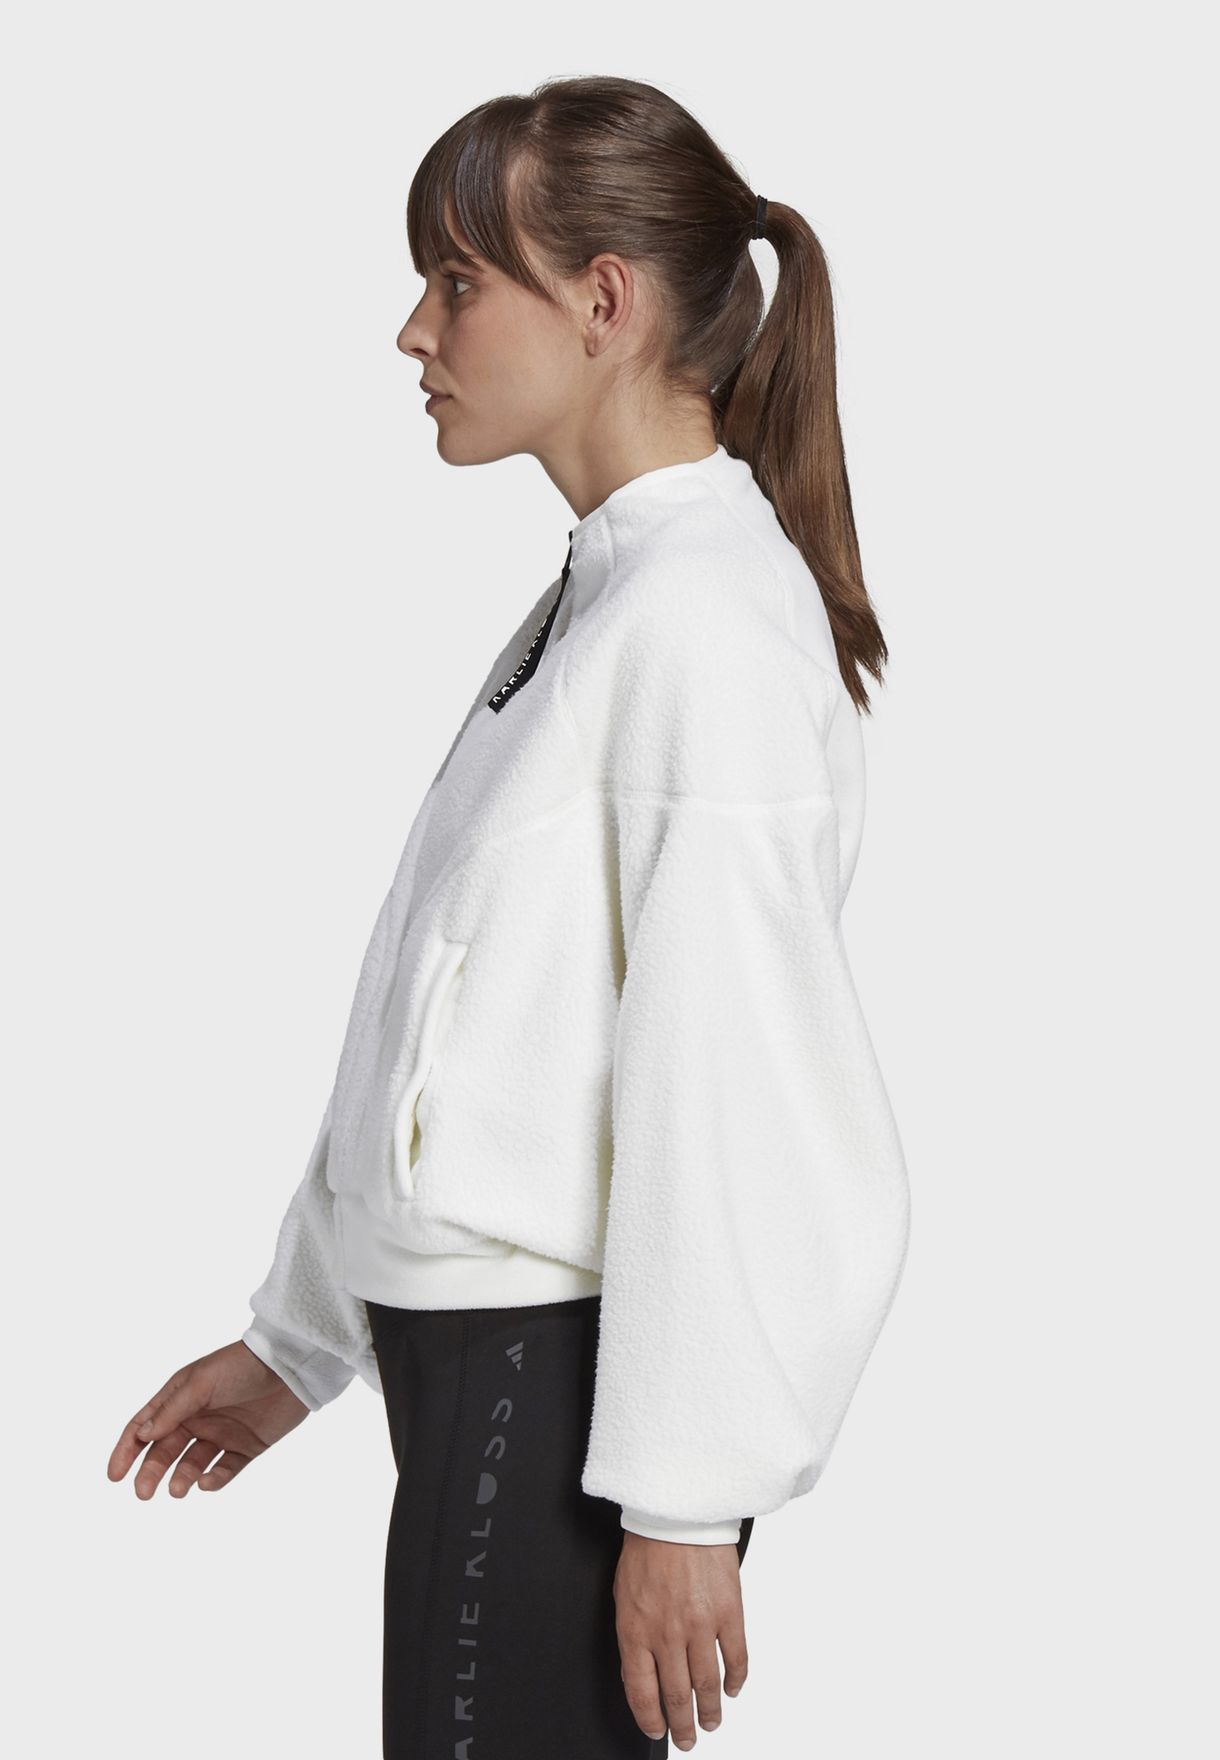 Karlie Kloss Essential Cover Up Jacket